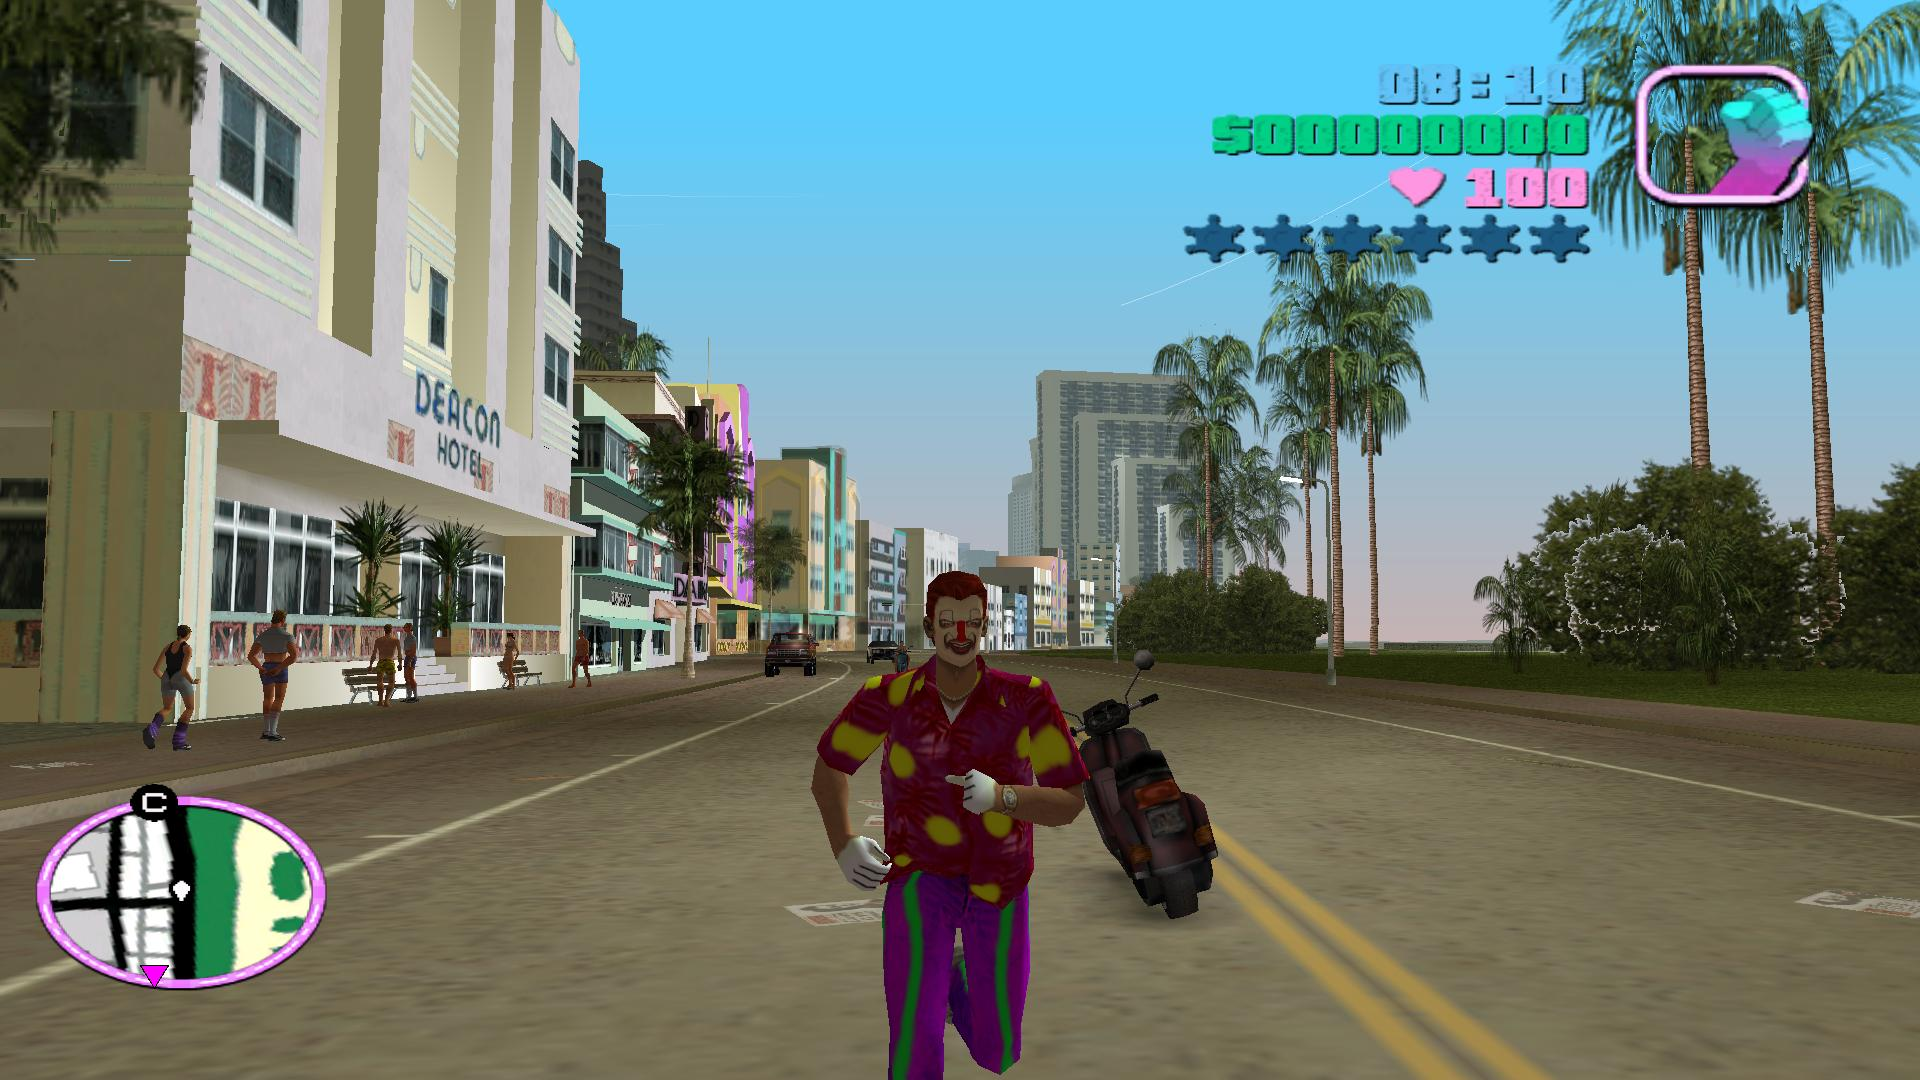 all about gta vice city Gta games: shoot dangerous gangsters, steal cars from innocent civilians, and play grand theft auto in one of our many free wreak havoc in vice city.